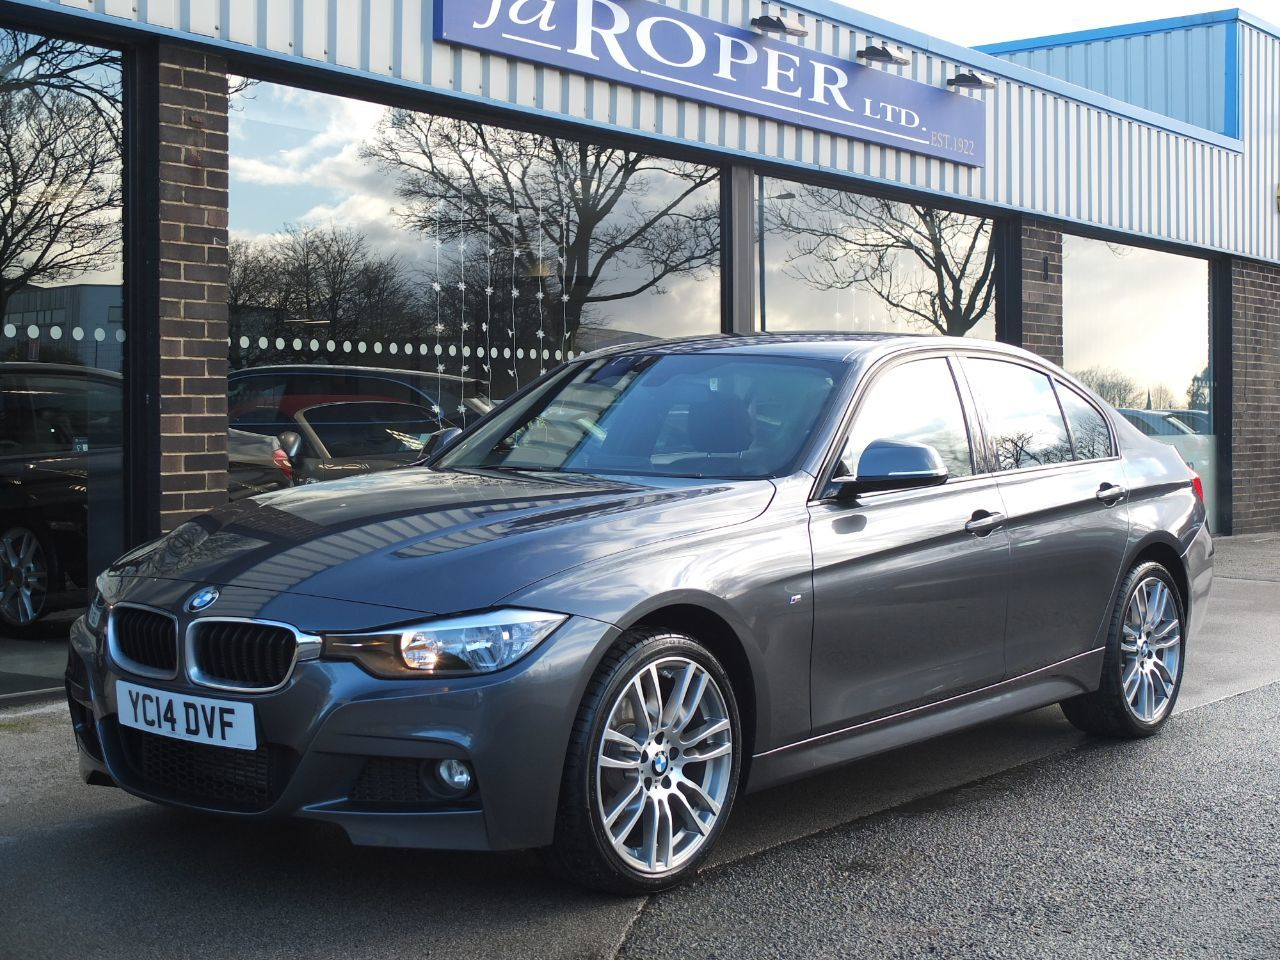 BMW 3 Series 2.0 320d xDrive M Sport Automatic, Media Pack Saloon Diesel GreyBMW 3 Series 2.0 320d xDrive M Sport Automatic, Media Pack Saloon Diesel Grey at fa Roper Ltd Bradford